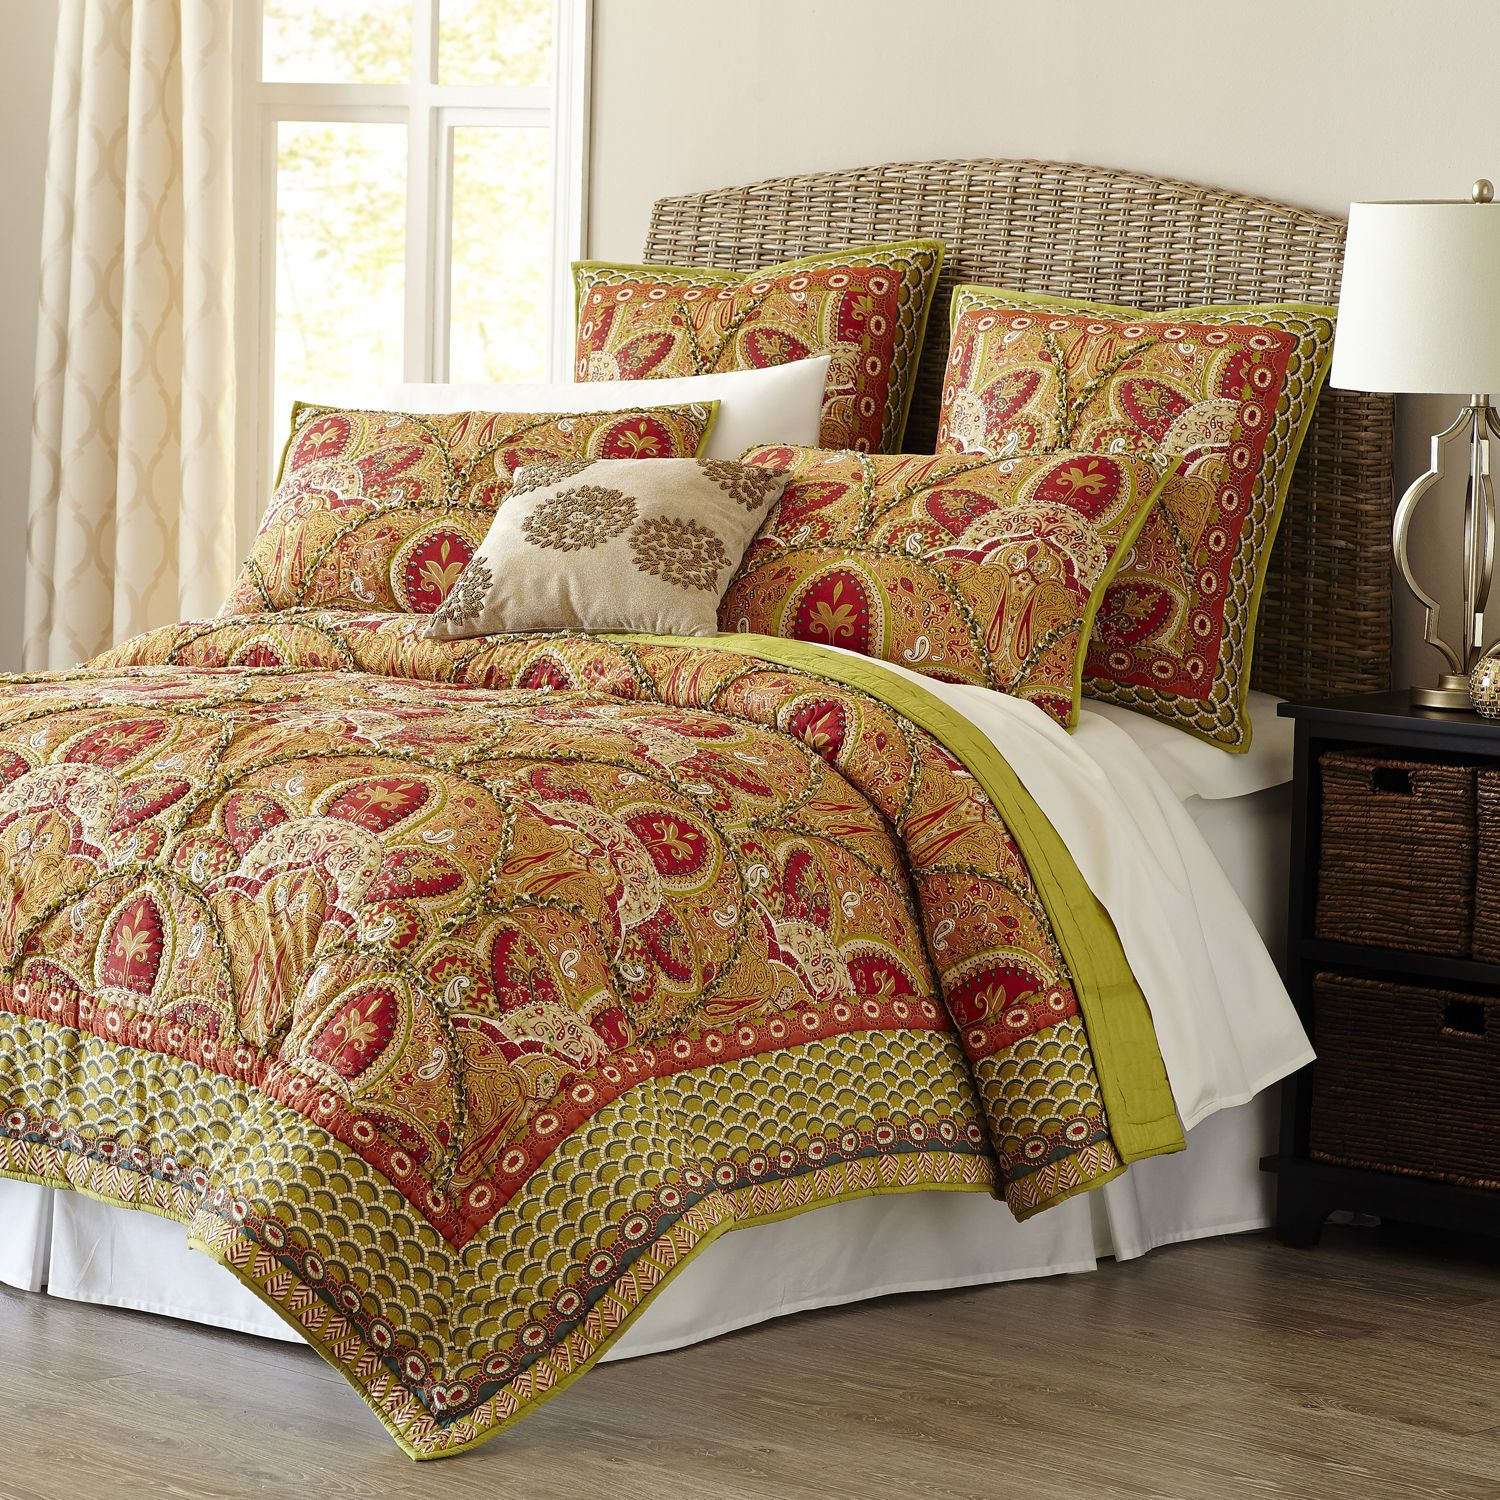 Asha Paisley Bedding & Quilt | Pier 1 Imports | Decorating ... : pier one quilts - Adamdwight.com